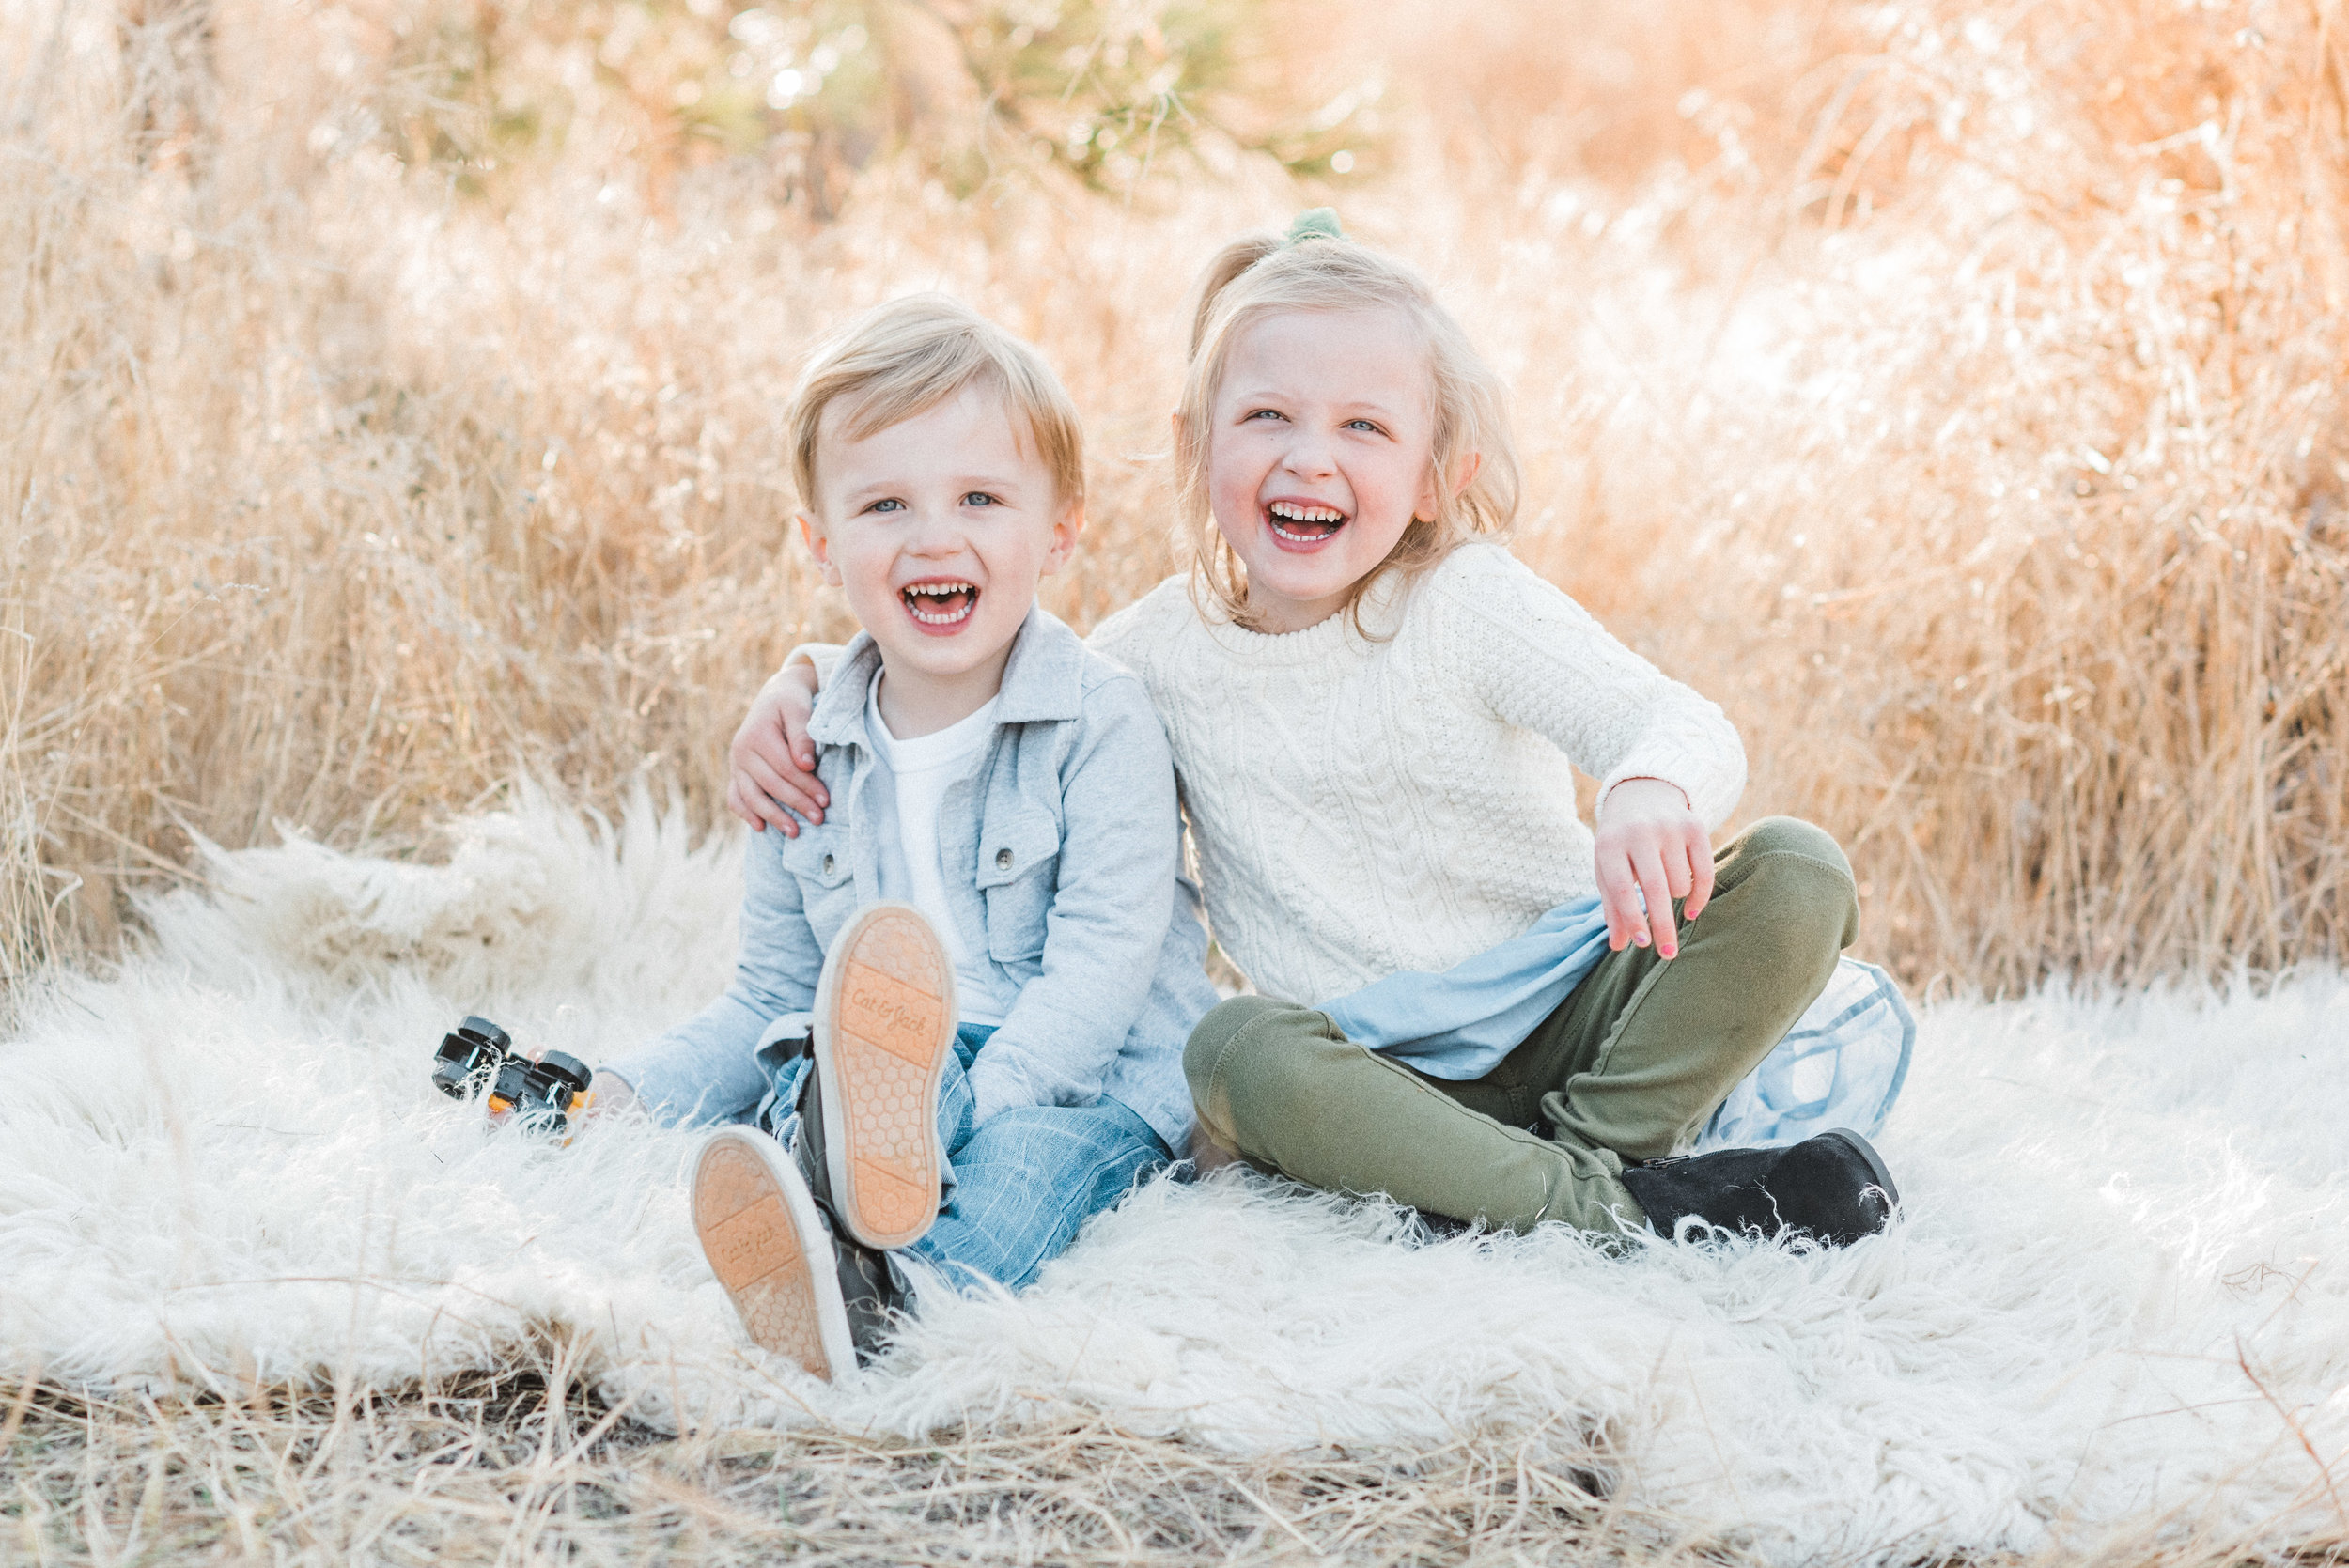 fall-family-photos-spokane-wa-bloom (22 of 32).jpg